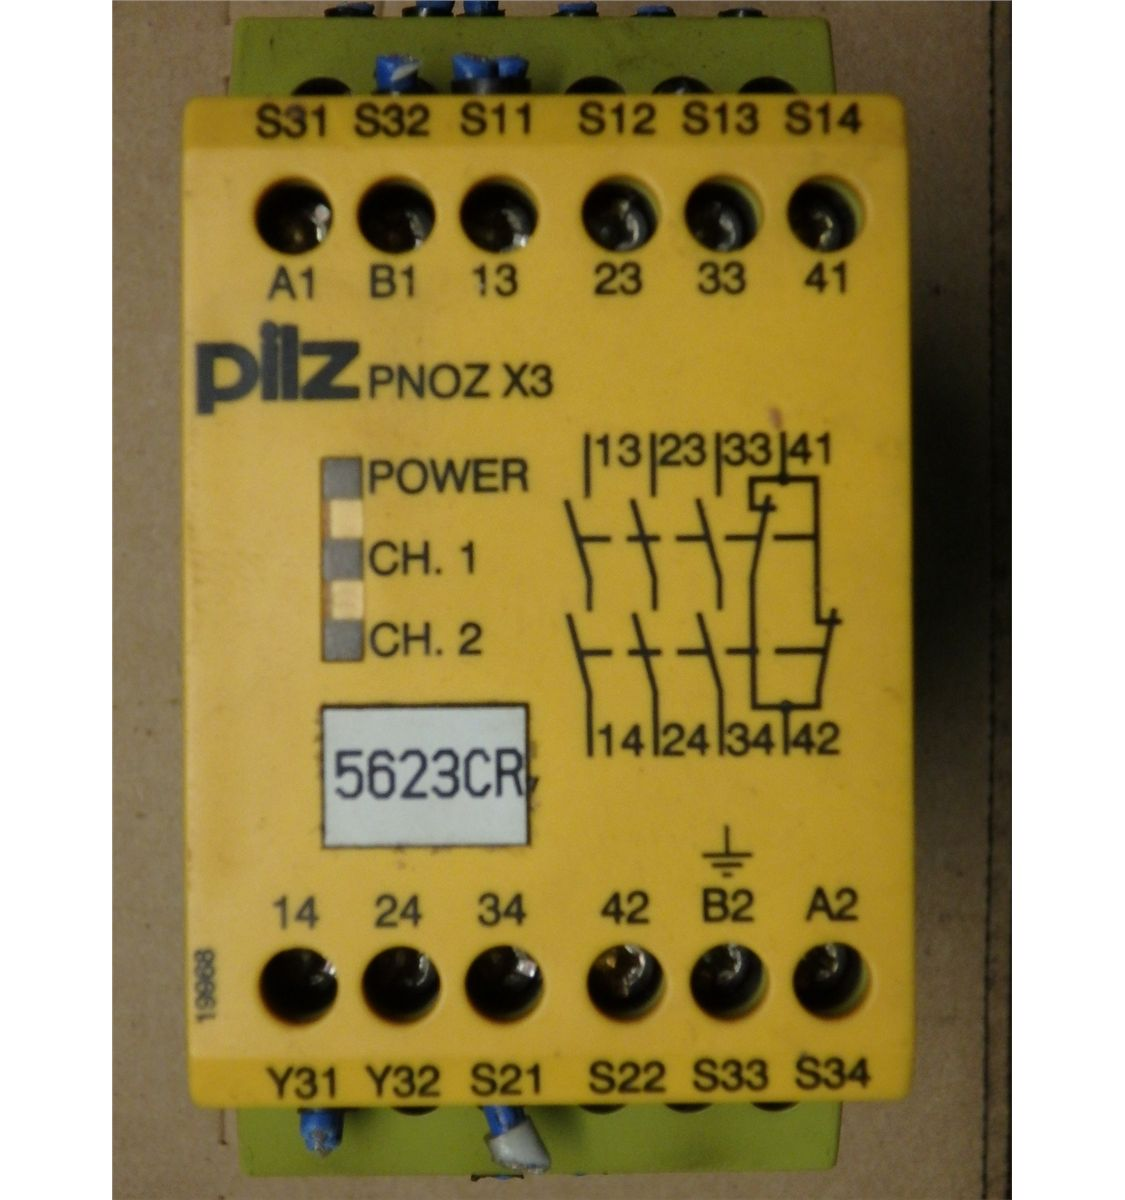 Pilz Safety Relay Wiring Diagram Omron Pnoz X Examples Image X3 On